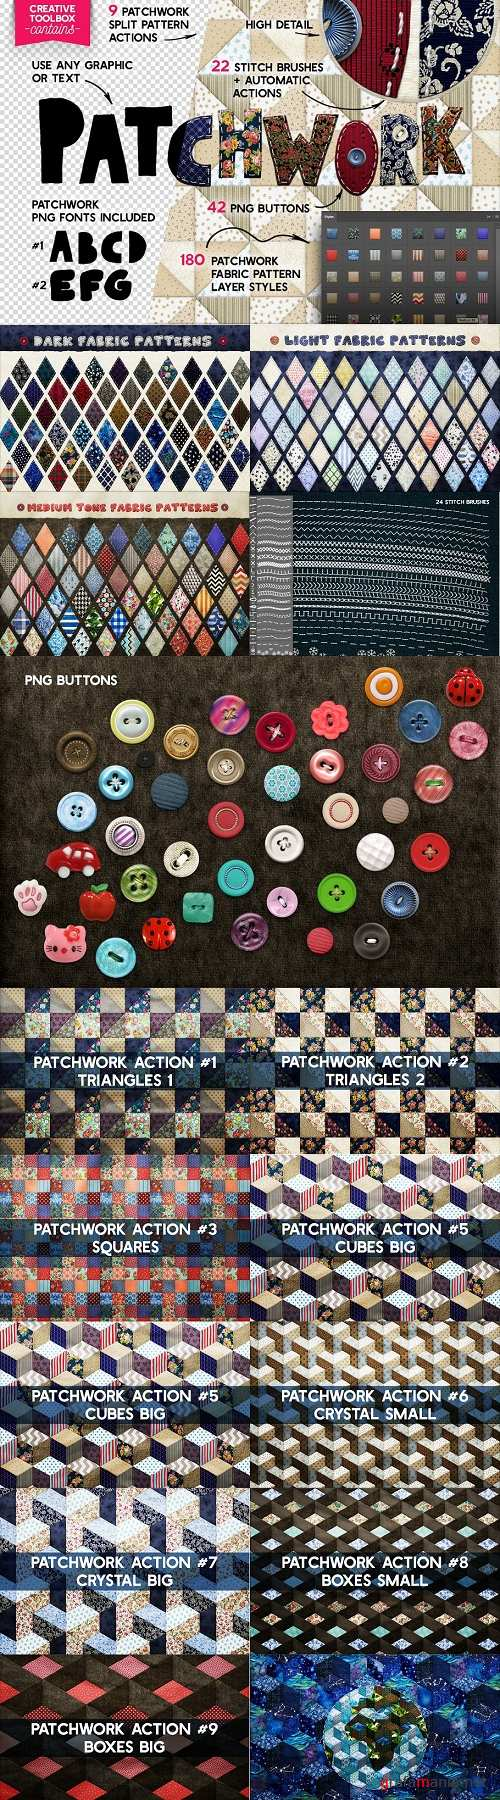 Patchwork Effect Photoshop Toolkit - 2489840